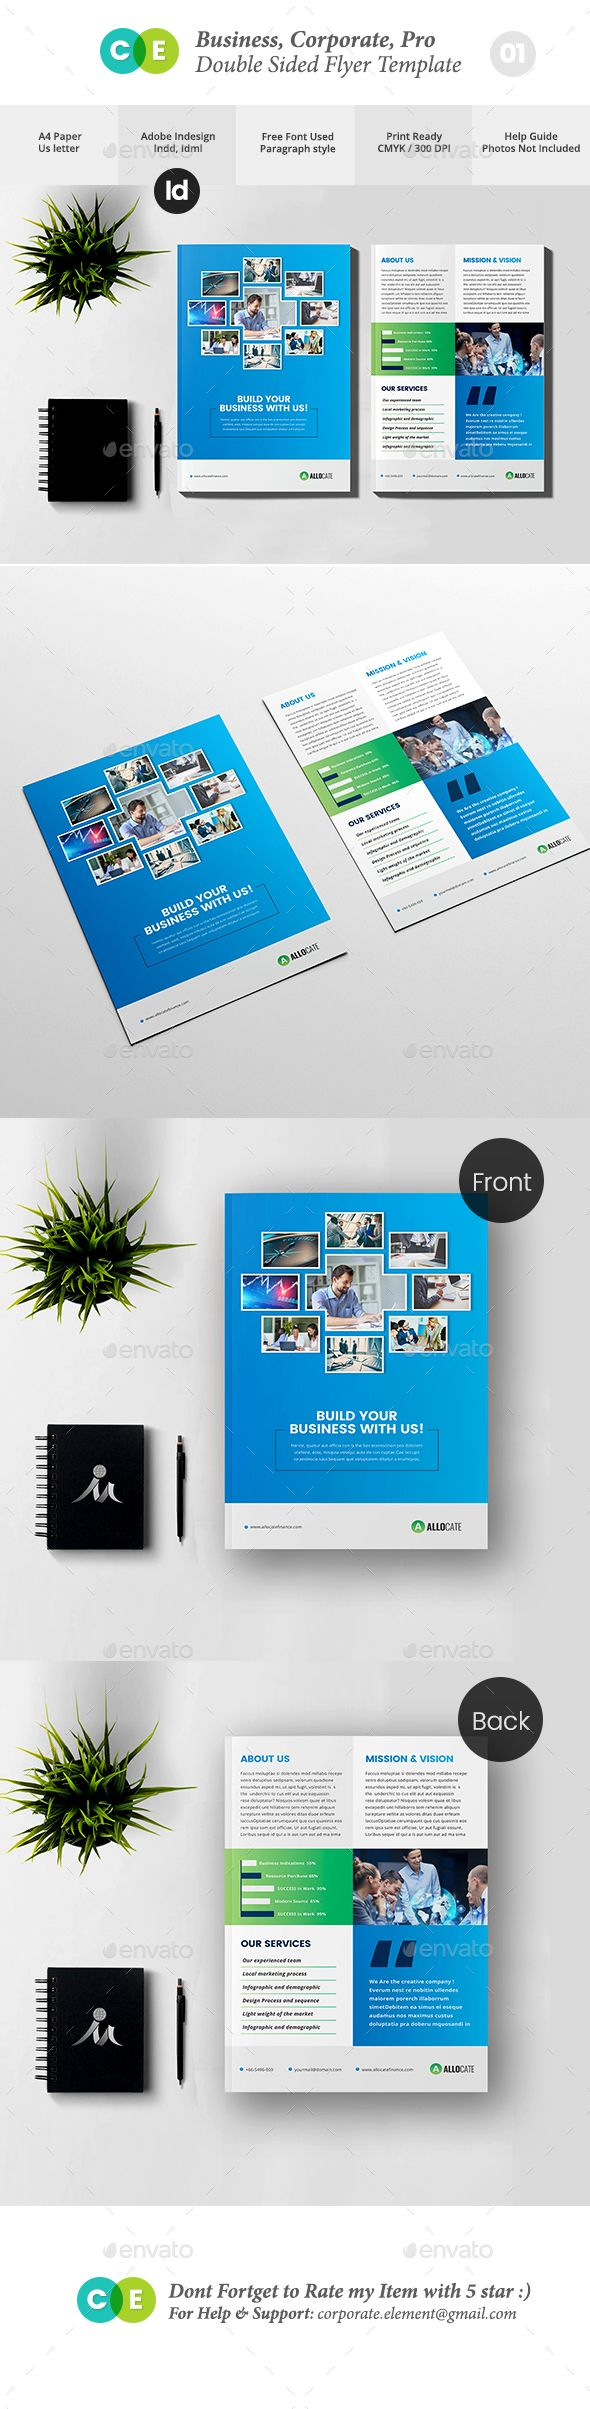 clean corporate pro double sided flyer v01 flyer template template and tri fold brochure